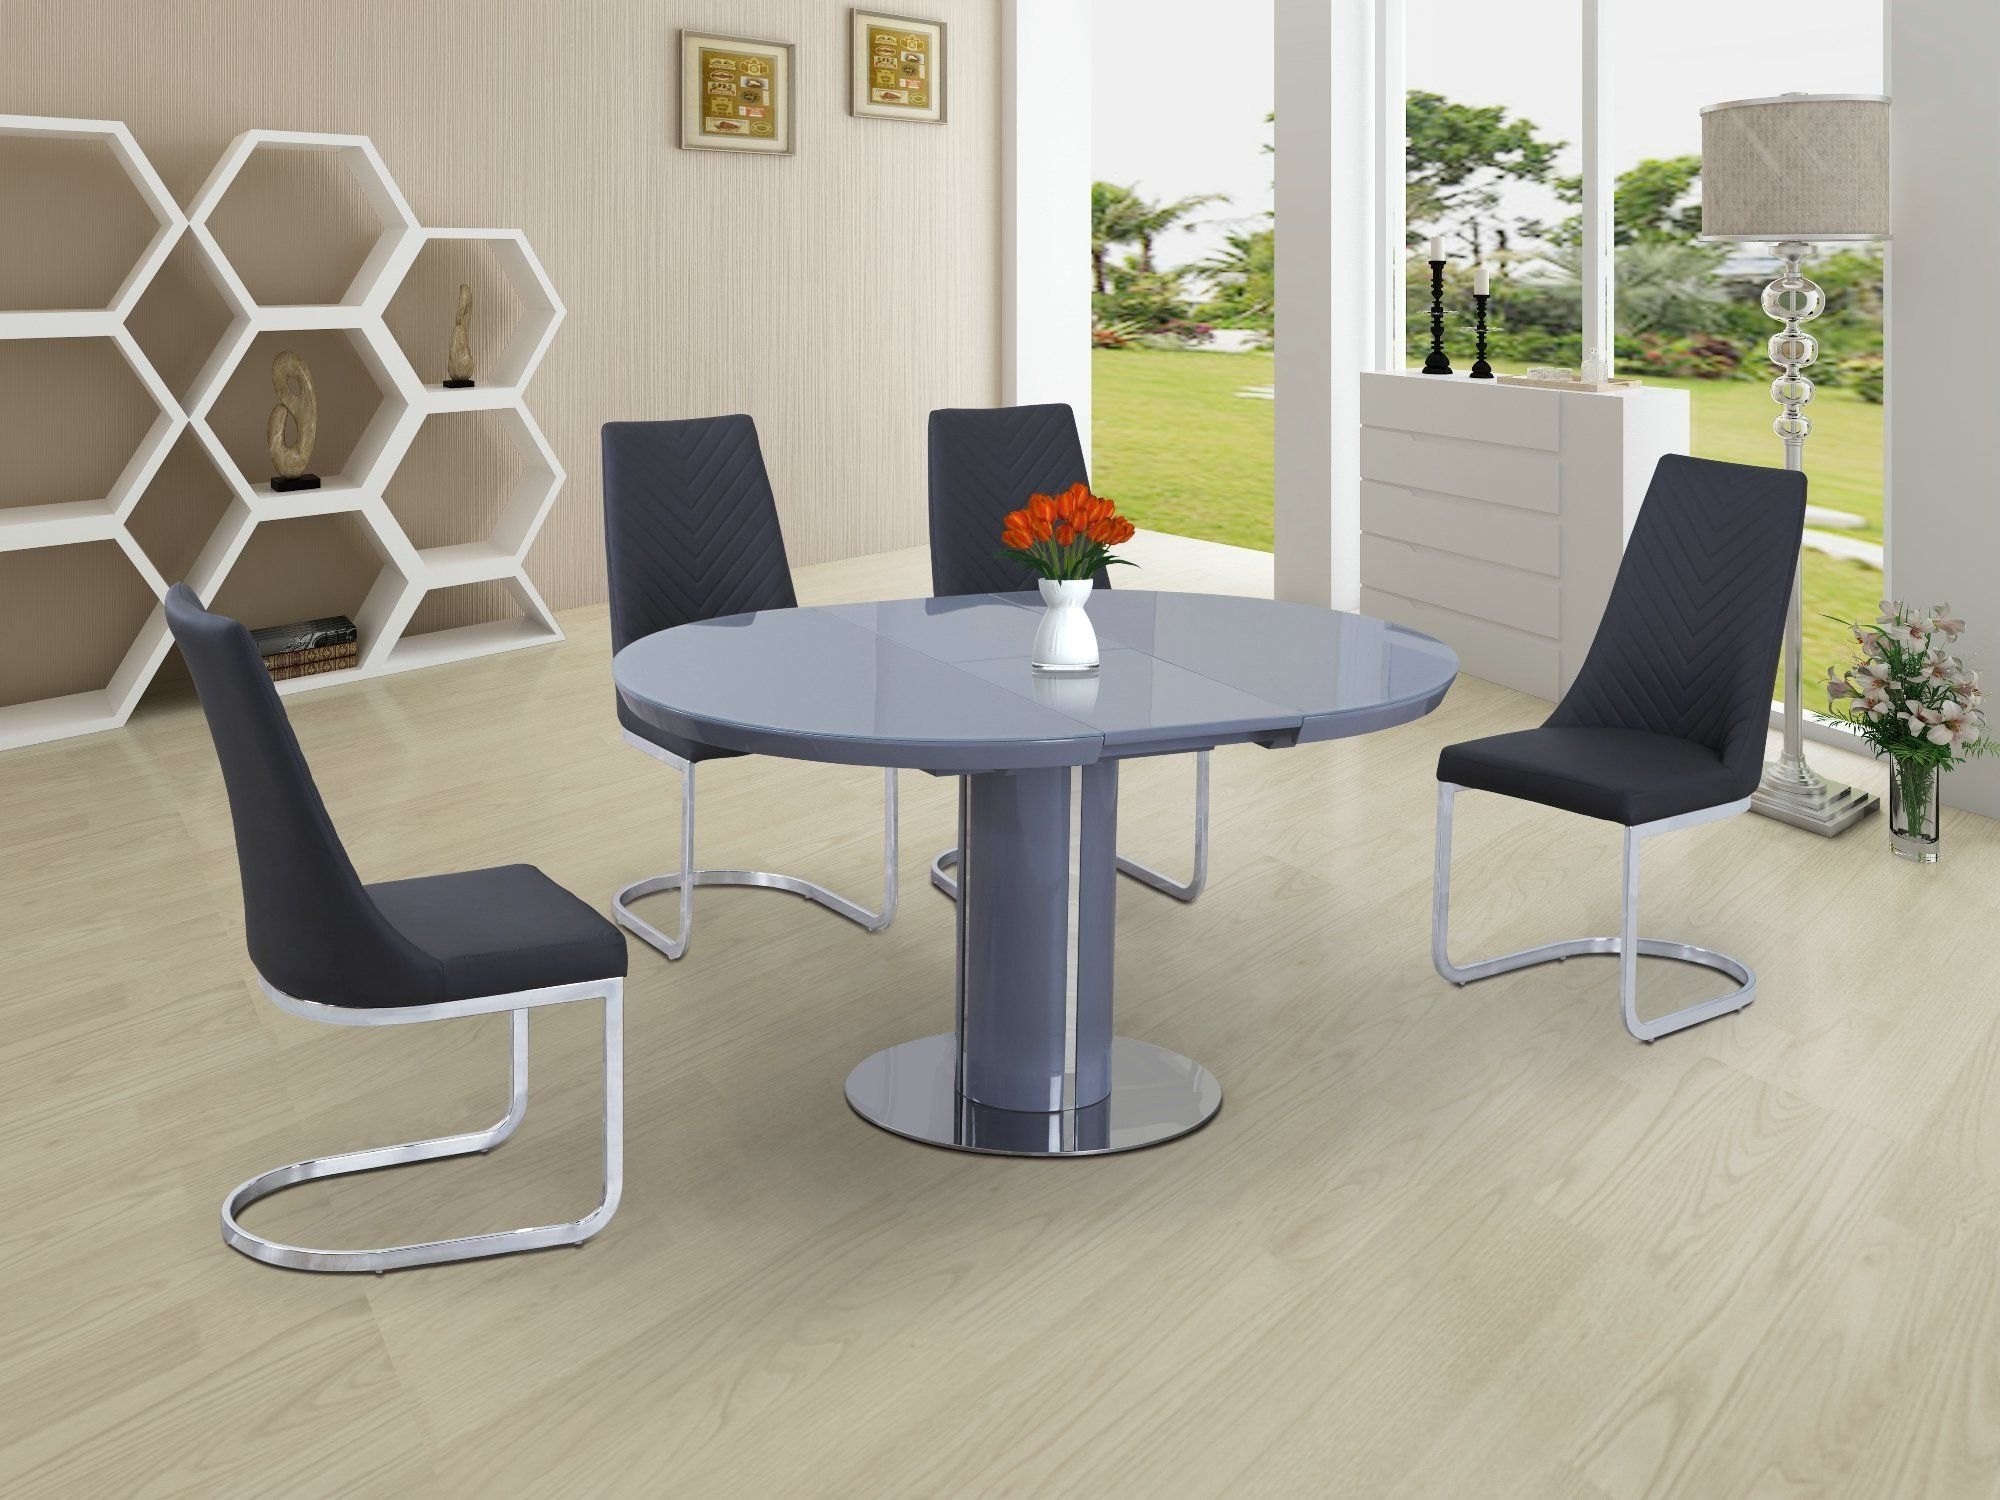 Round Dining Tables Extends To Oval Inside Preferred Eclipse Round Oval Gloss & Glass Extending 110 To 145 Cm Dining (View 9 of 25)